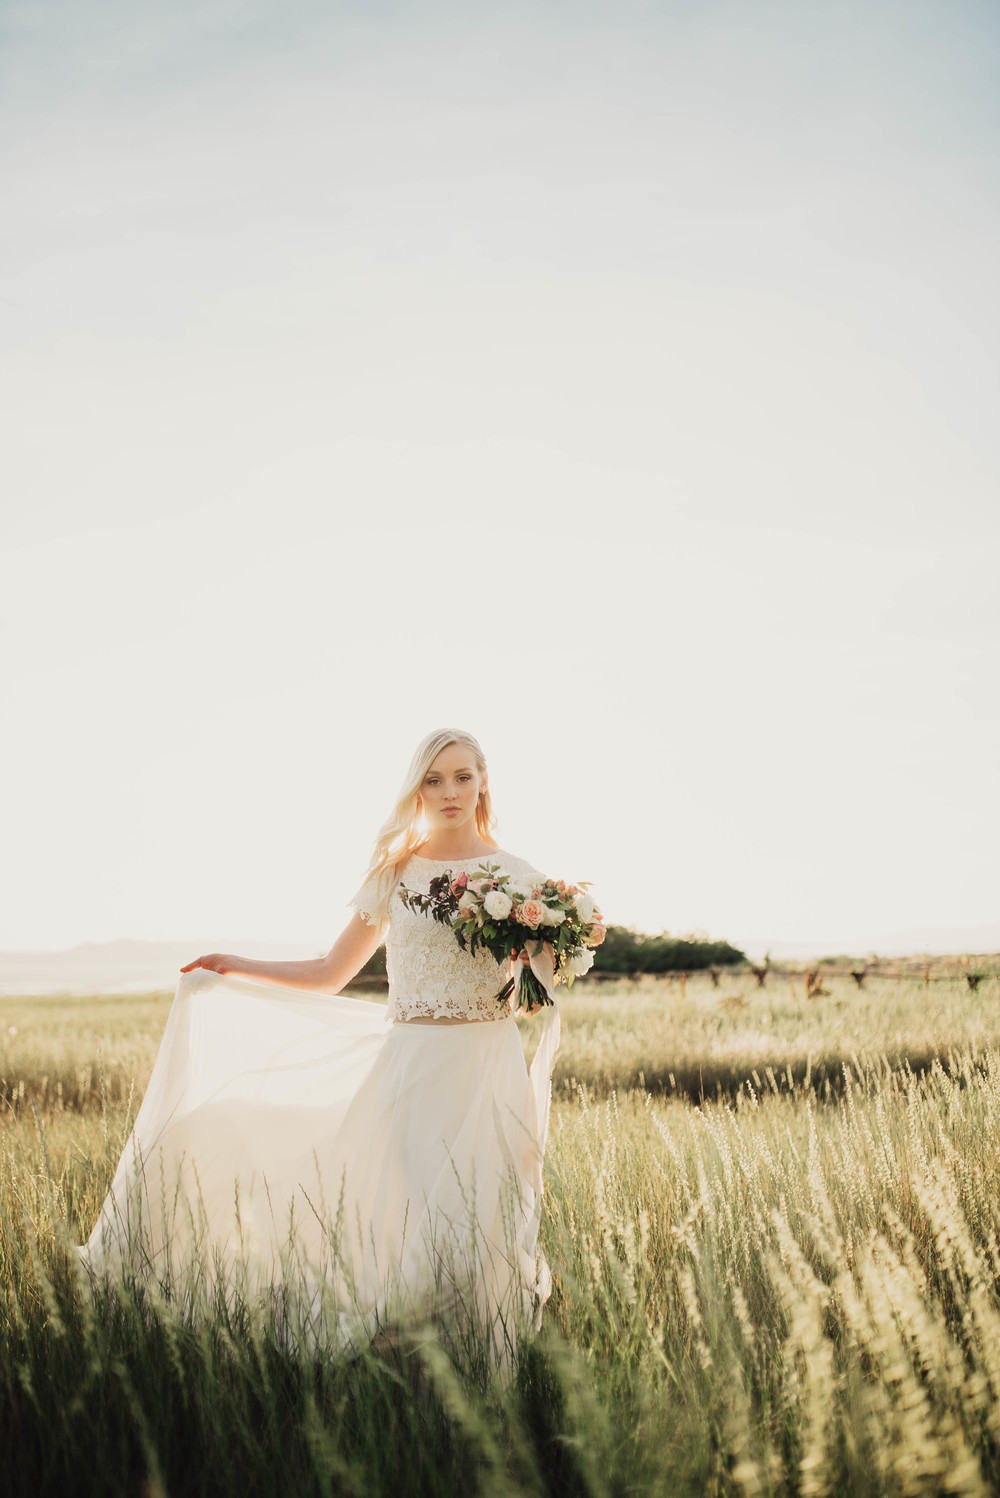 Sunset bridals in Utah fields